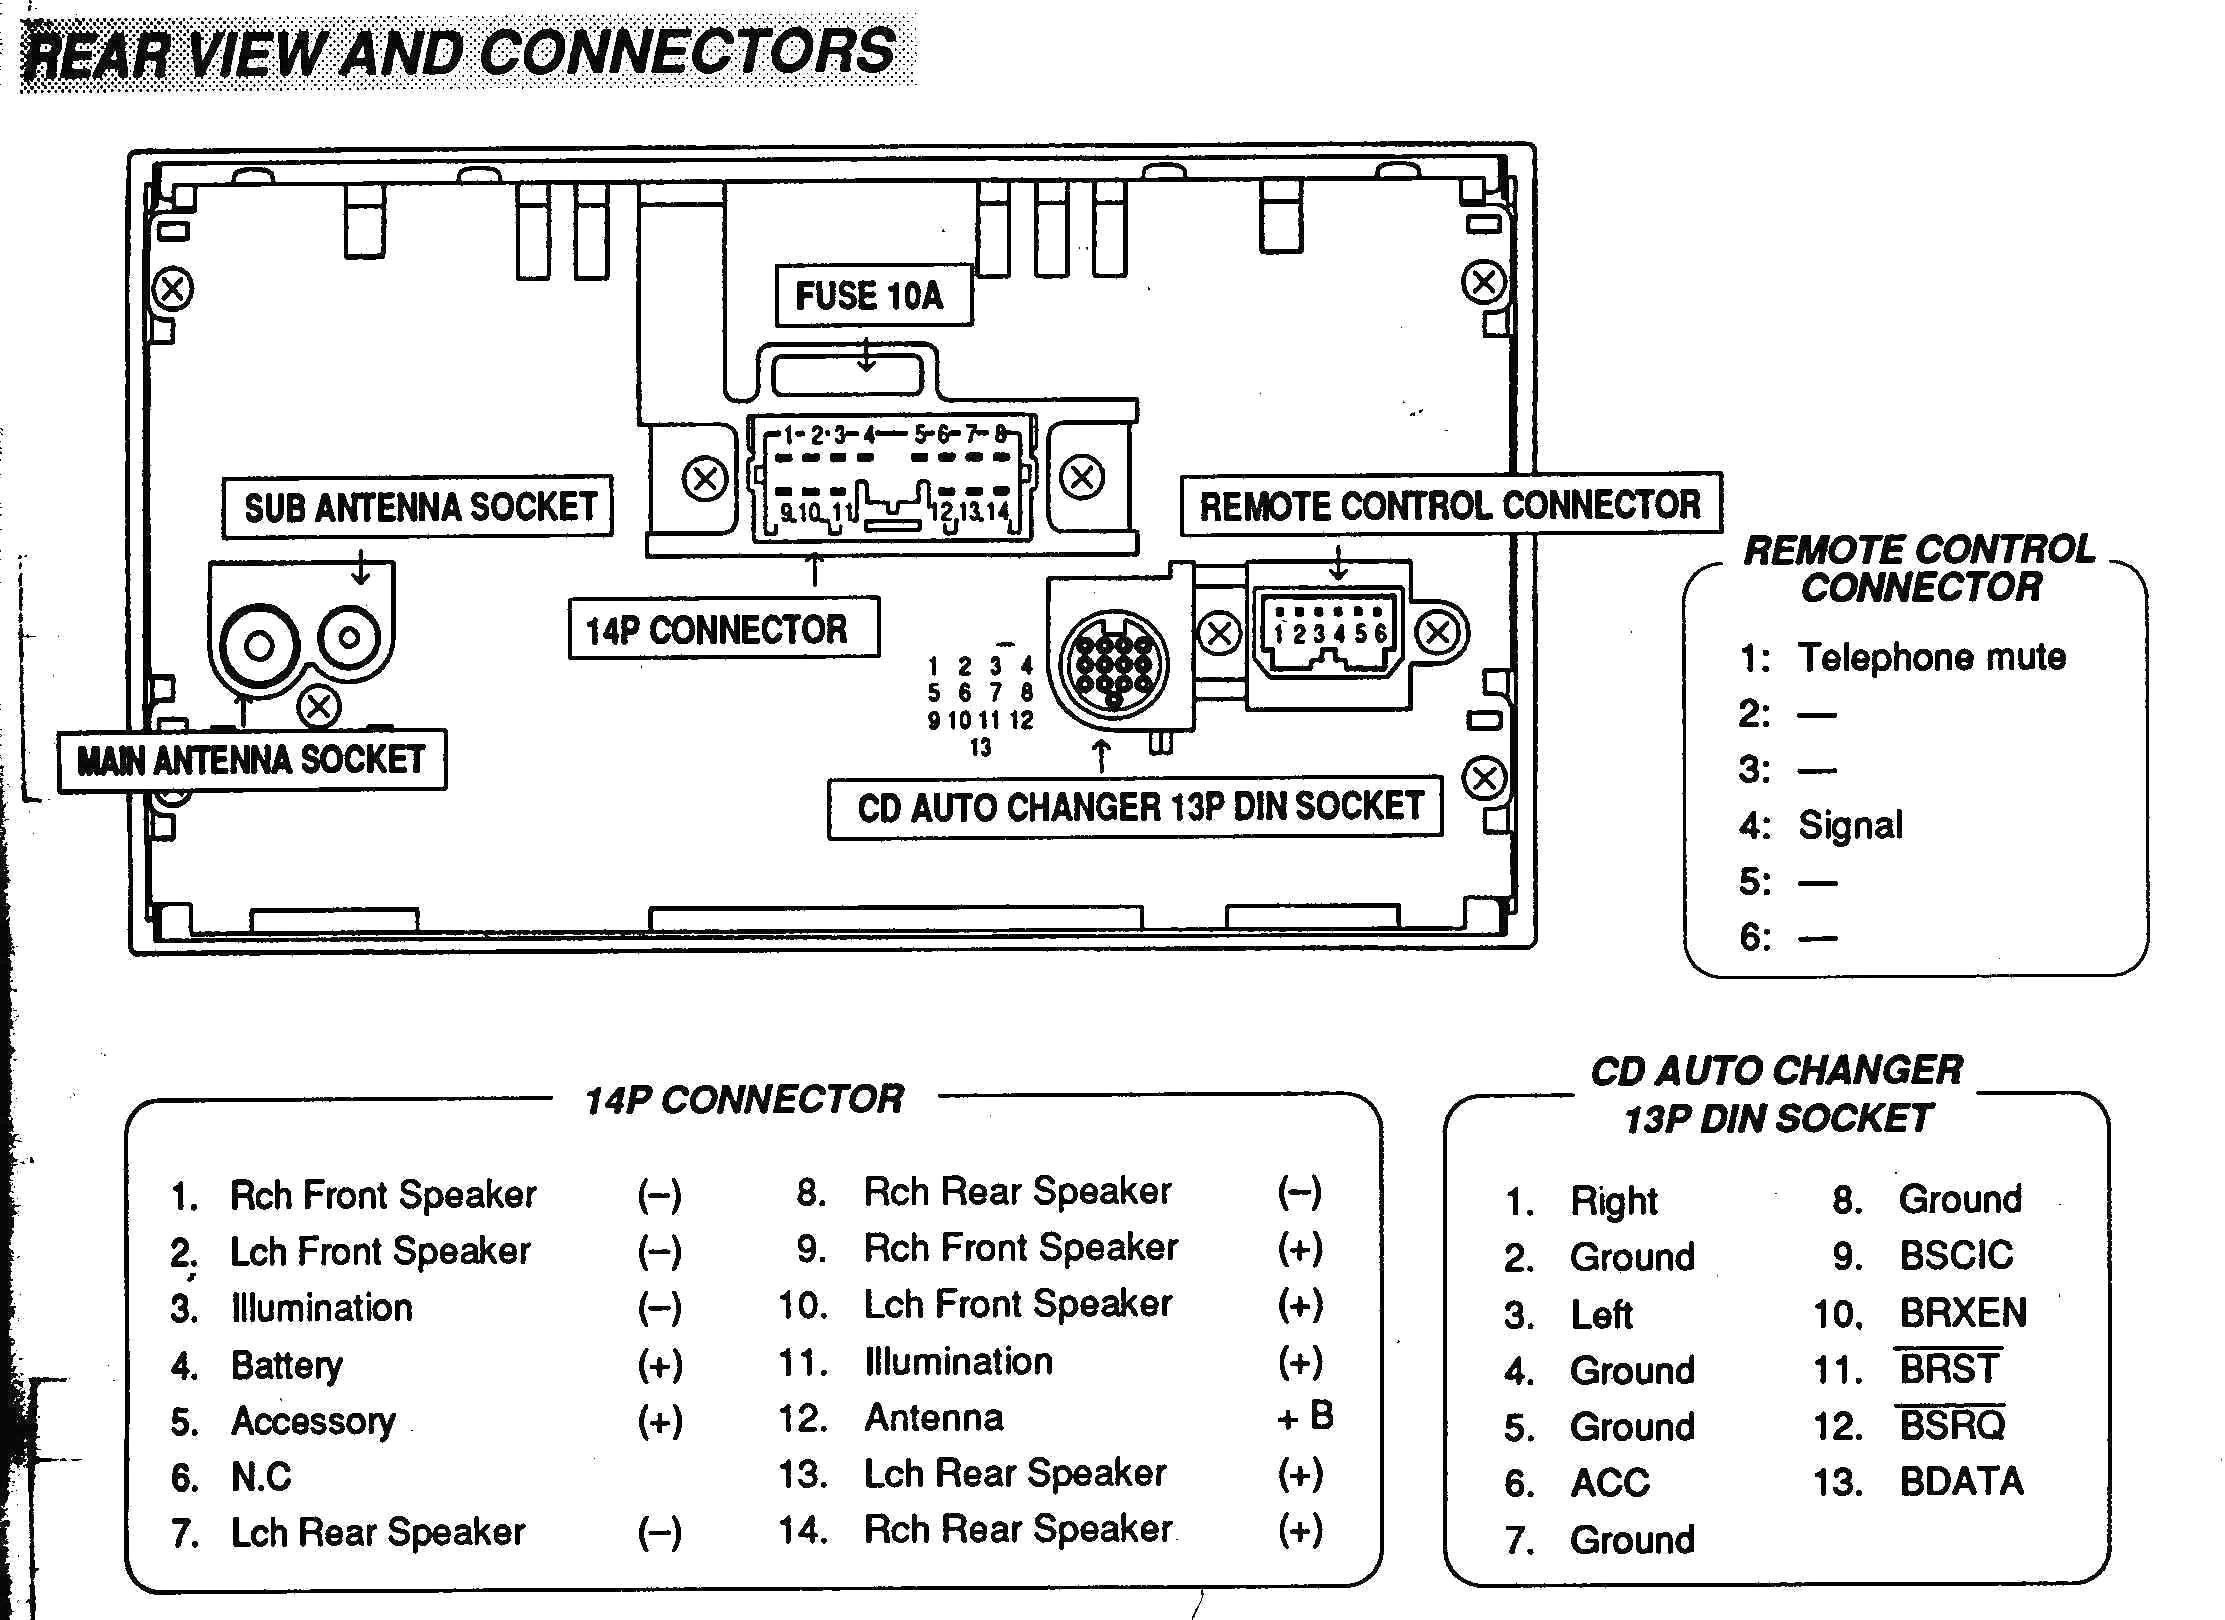 Speaker Wire Diagram for Car Audio 2001 Honda Accord Ex Stereo Wiring Diagram Wiring solutions Of Speaker Wire Diagram for Car Audio